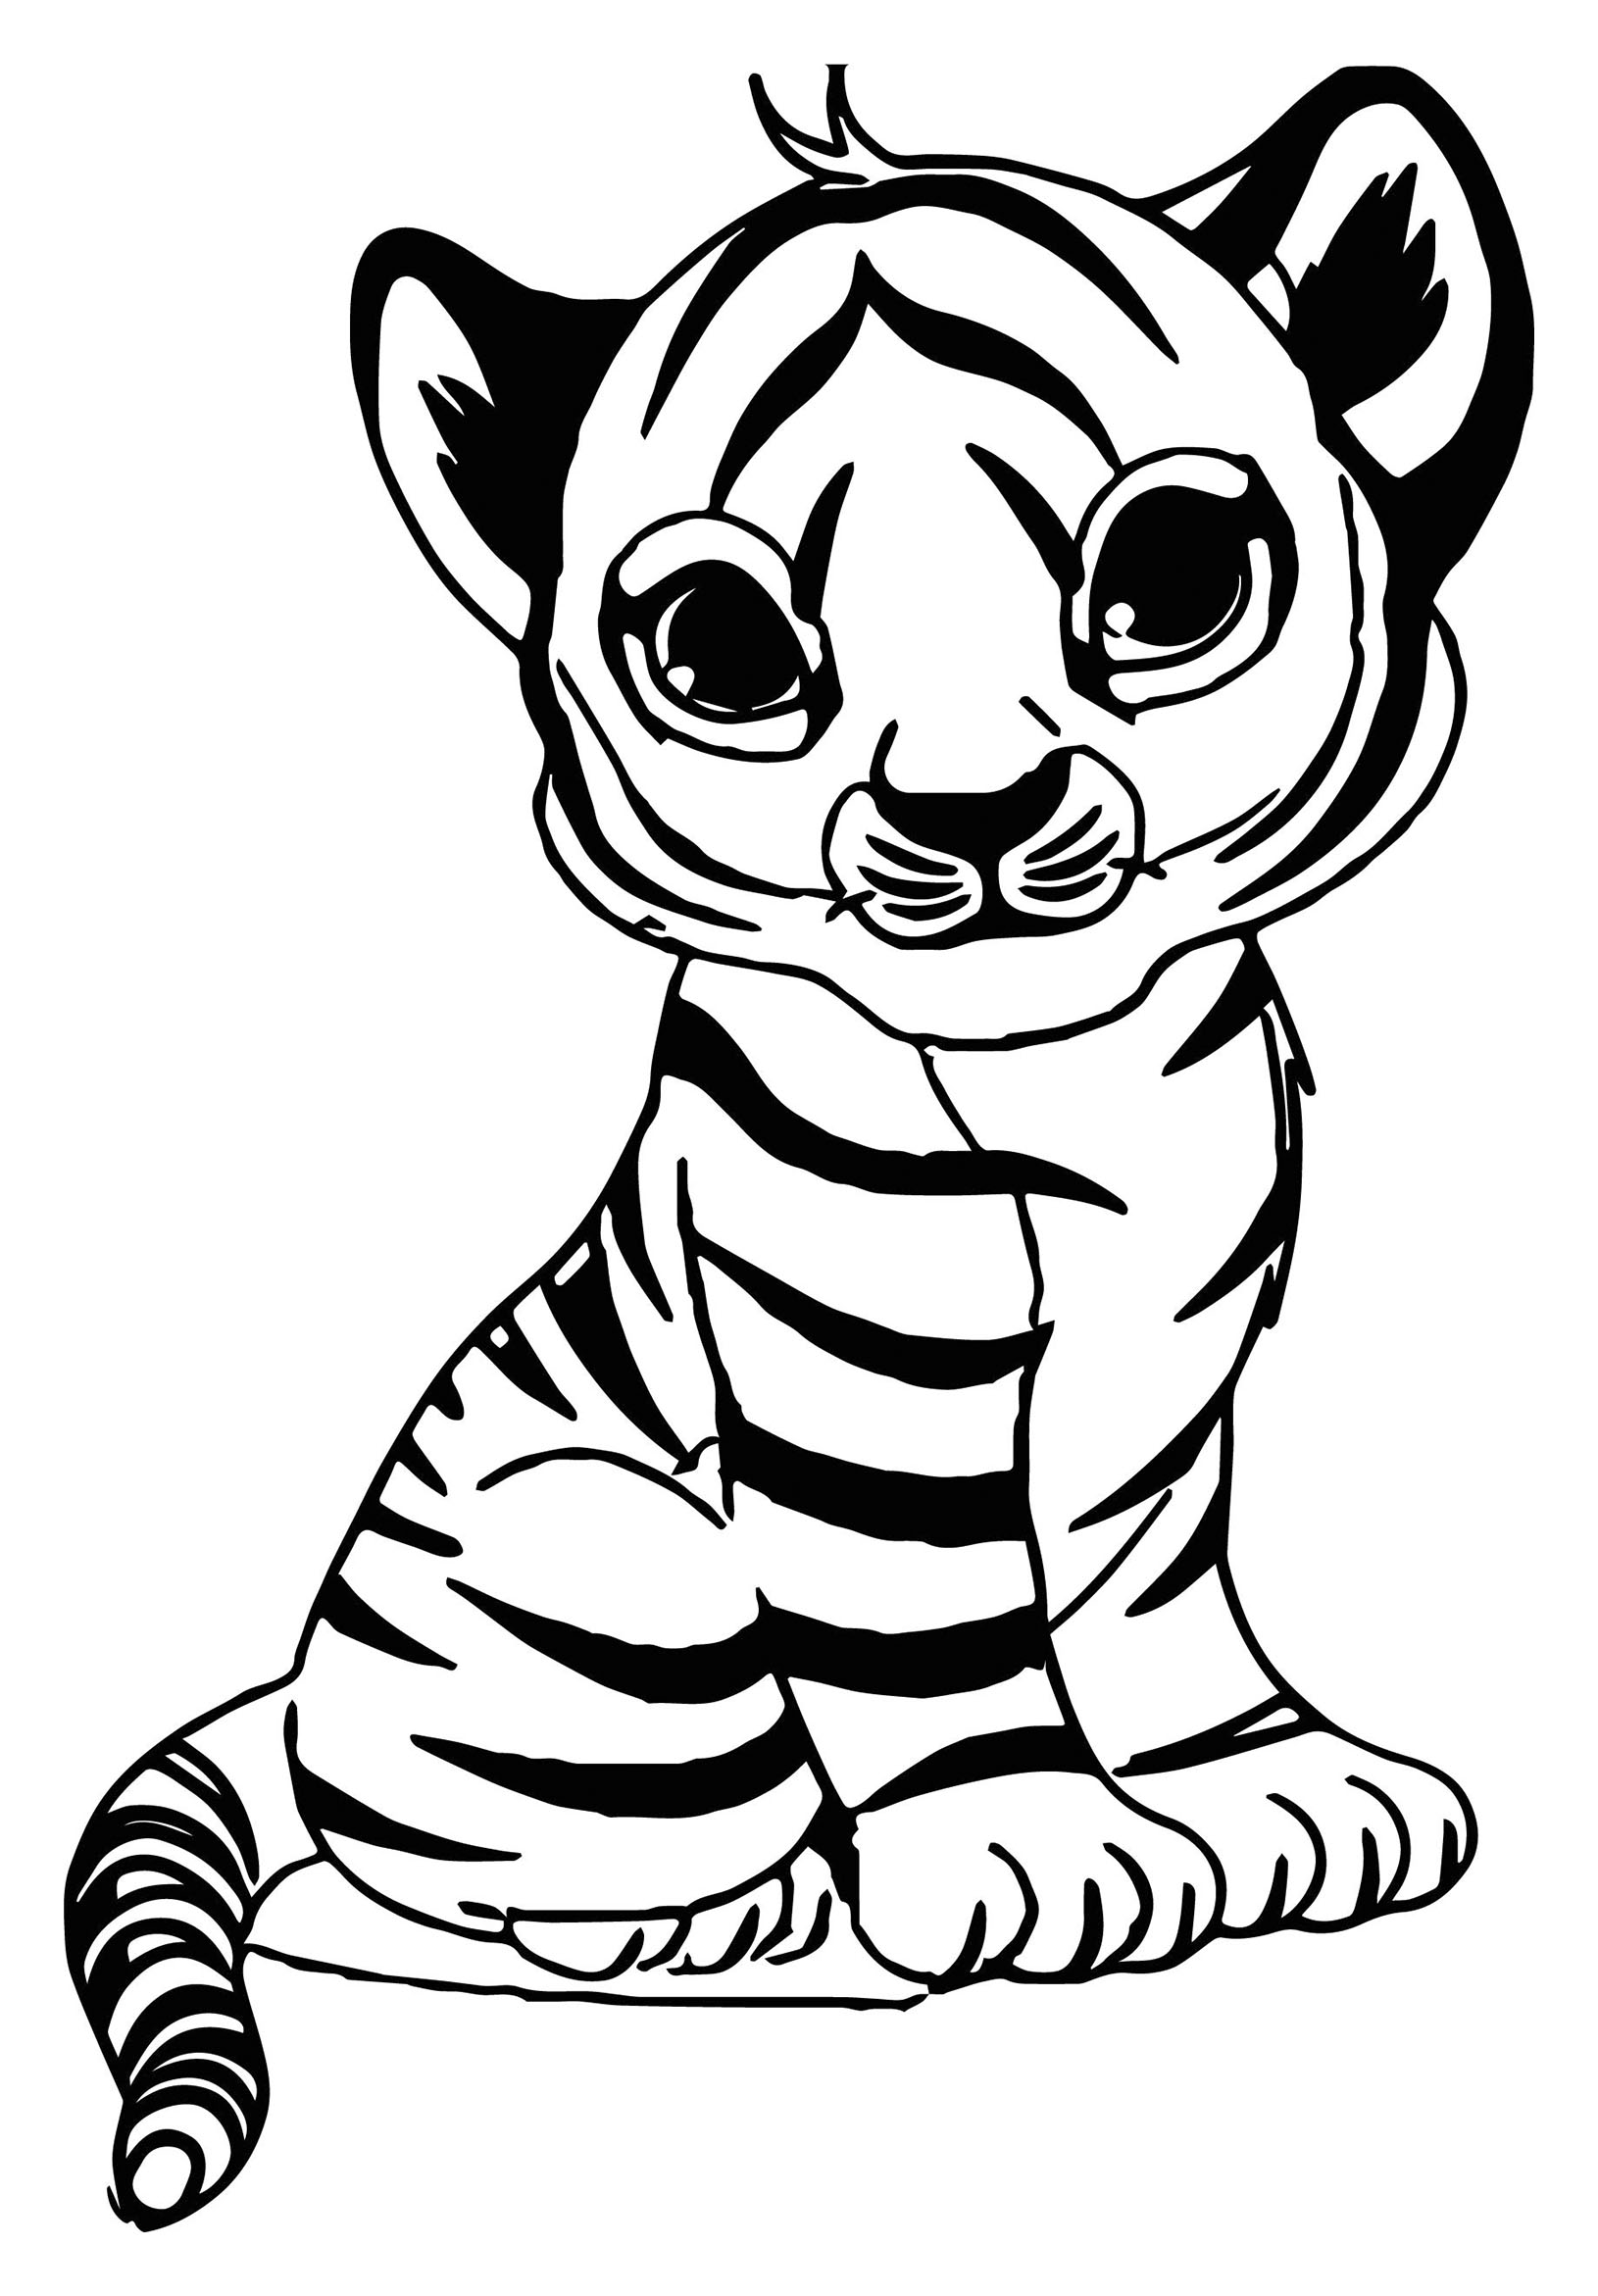 Tigers To Print For Free Tigers Kids Coloring Pages